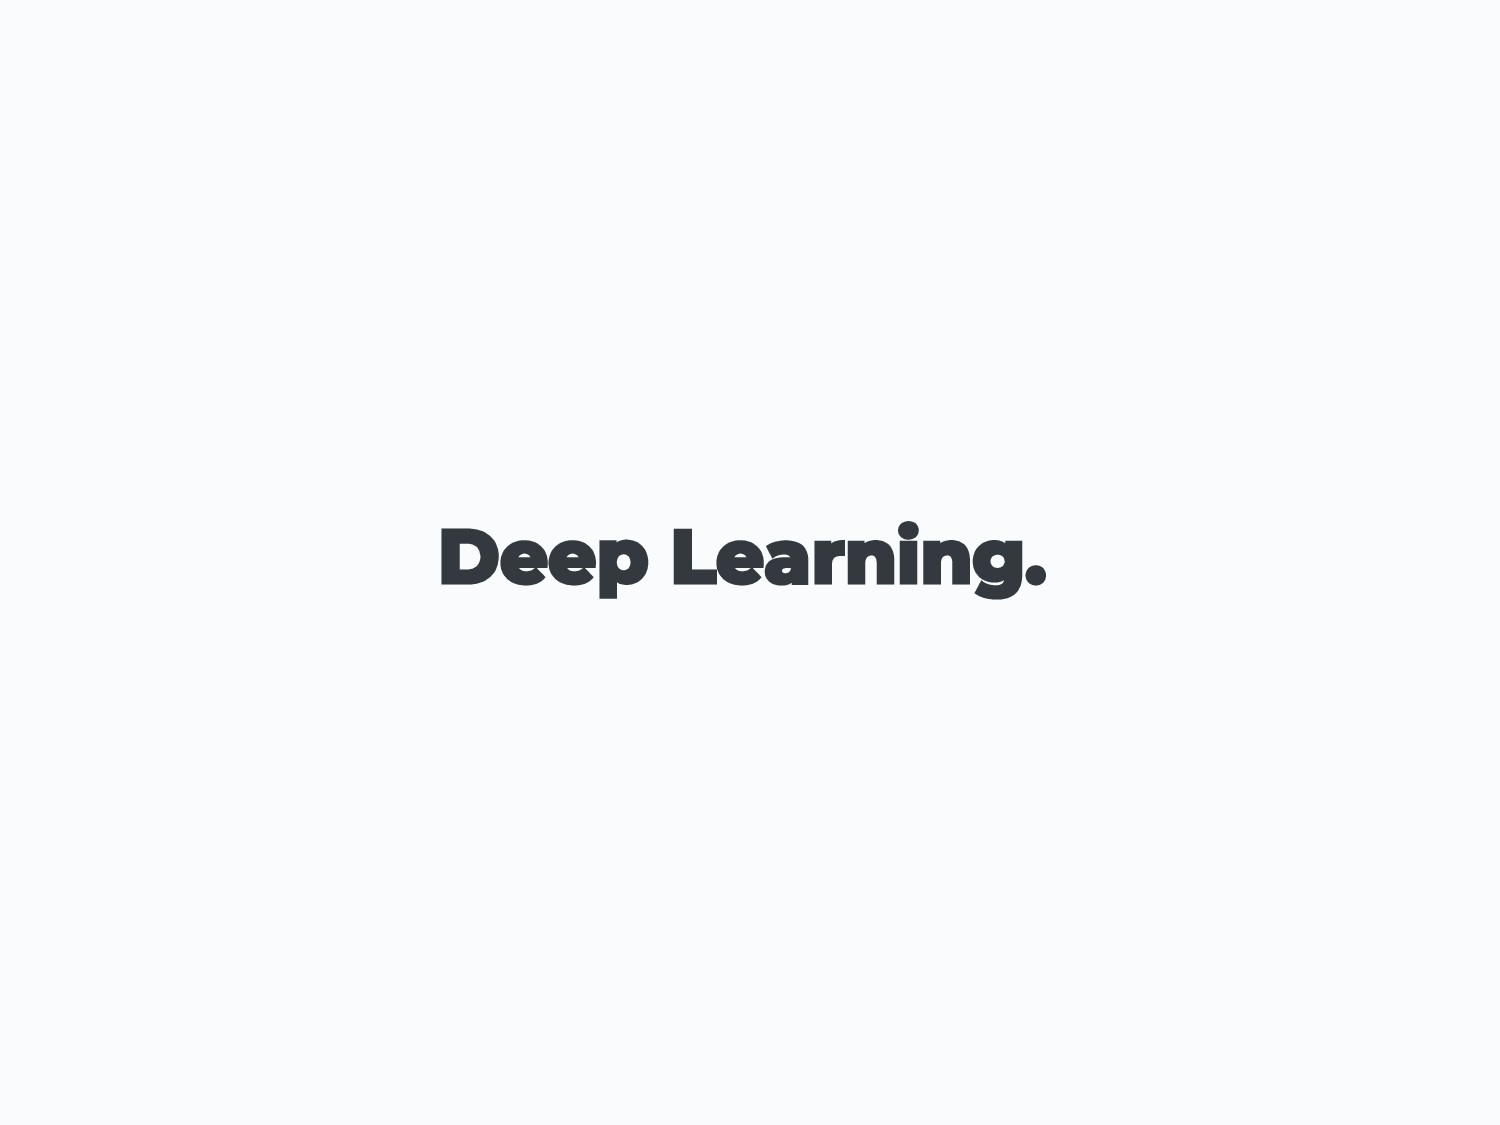 Deep Learning.